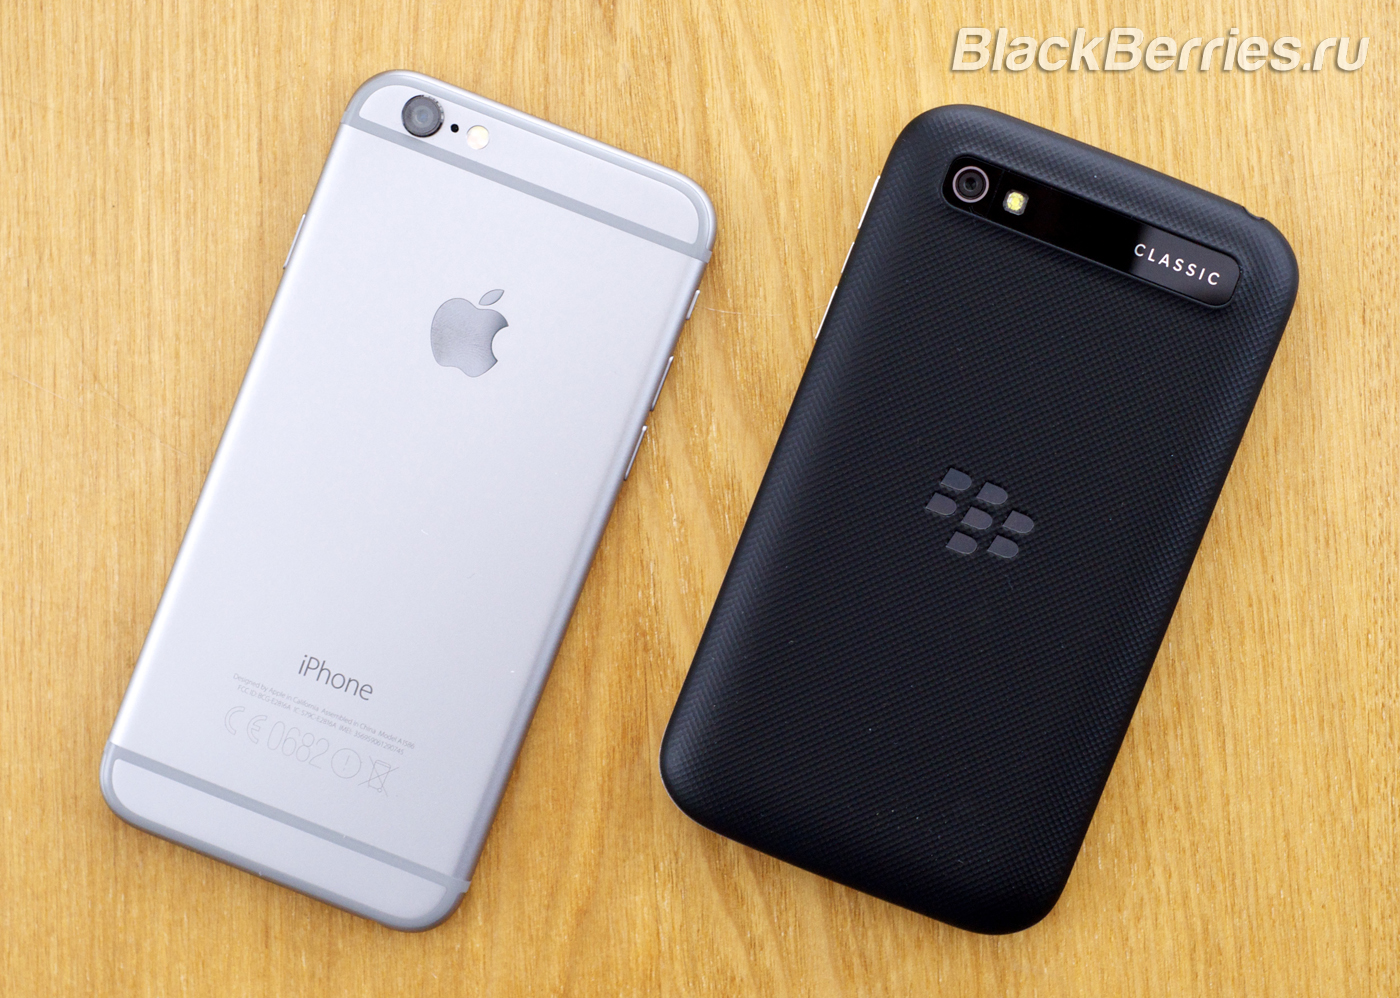 BlackBerry-Classic-vs-iPhone-Q10-Passport-35